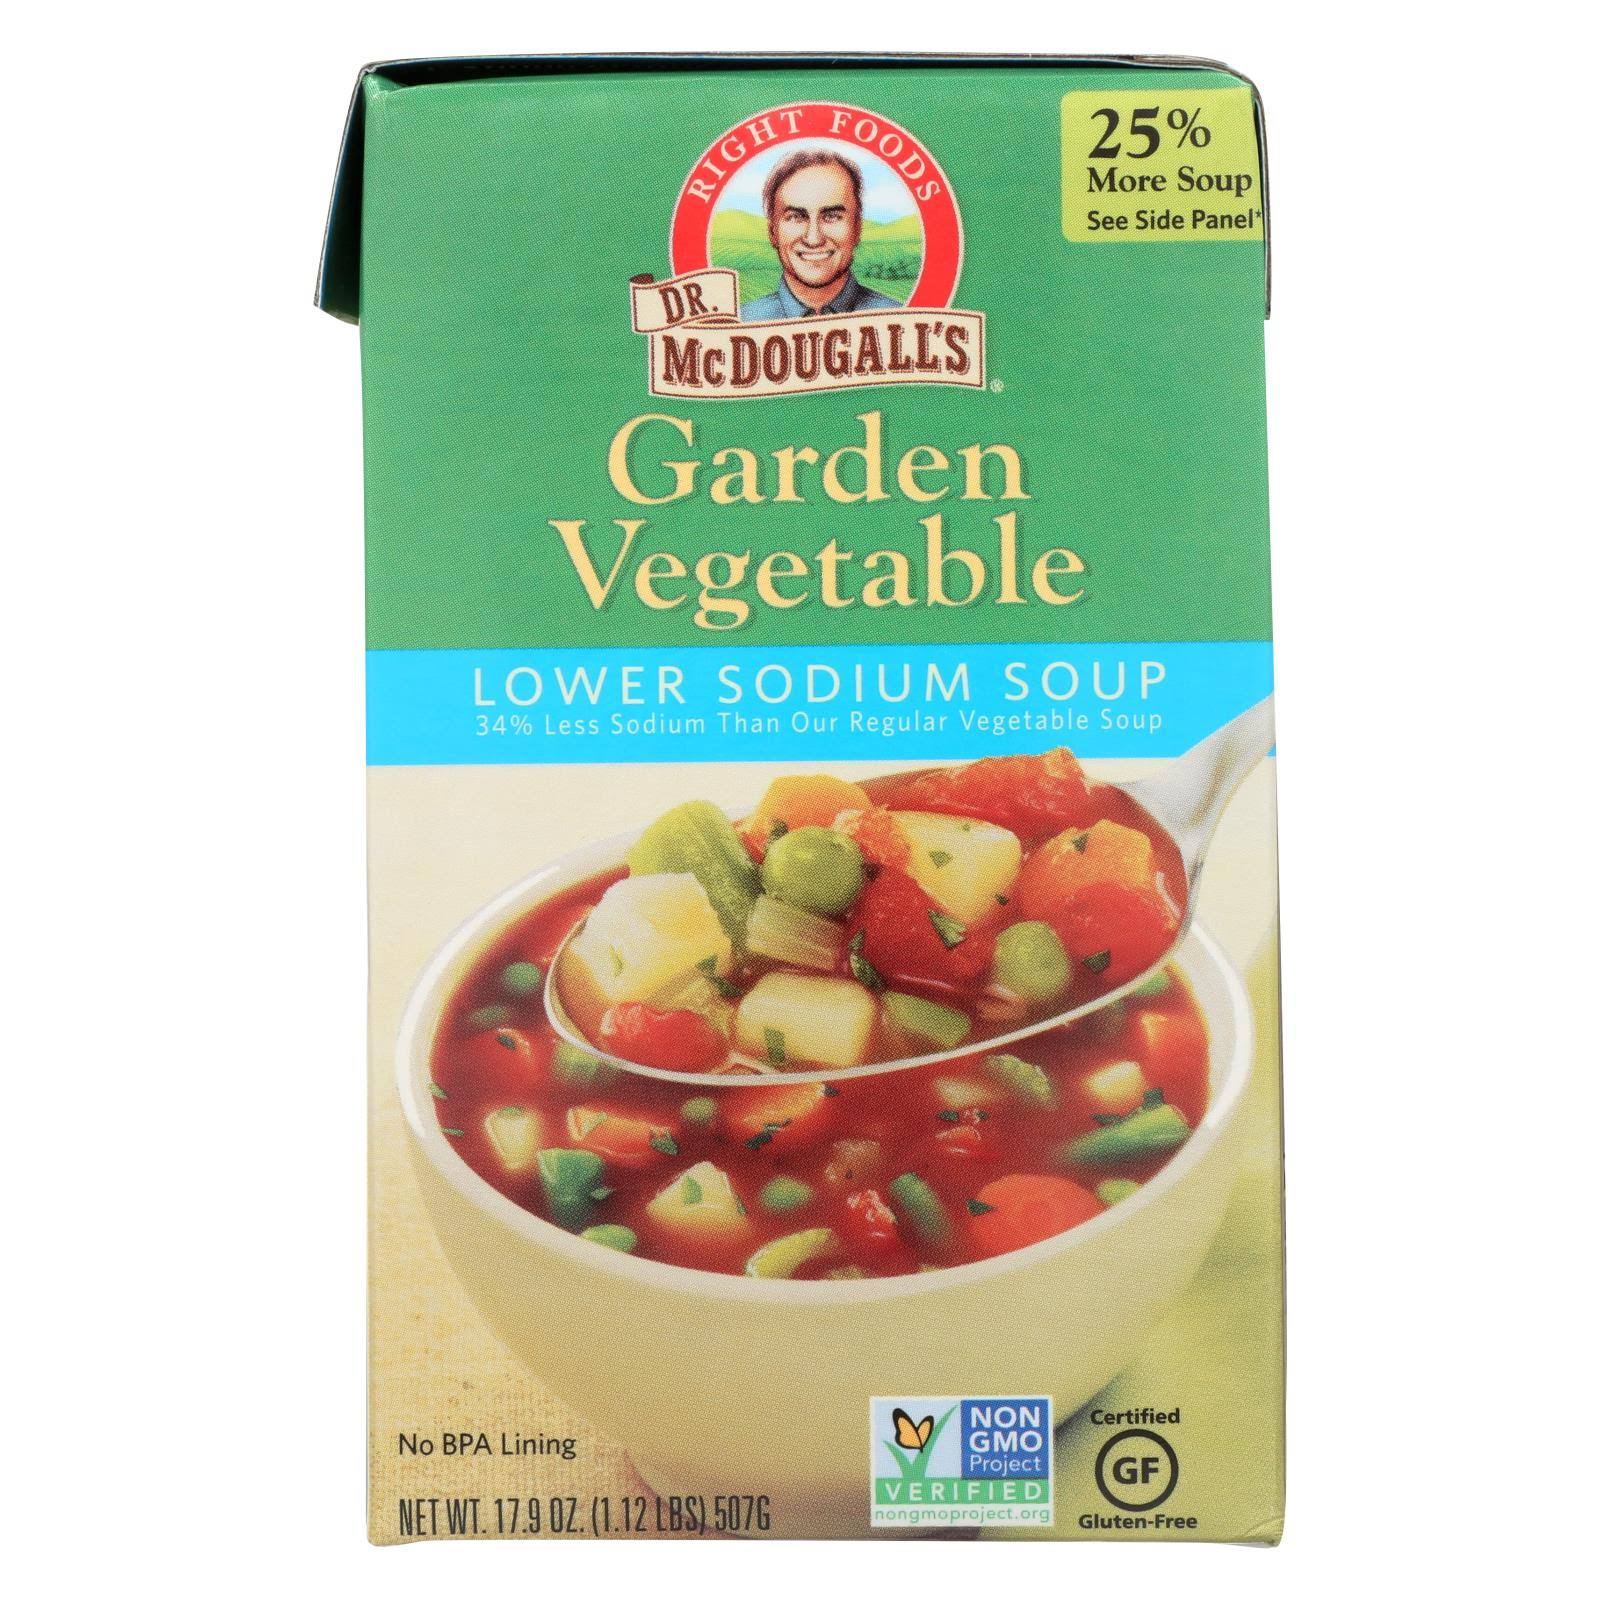 Dr. McDougall's Garden Vegetable Soup